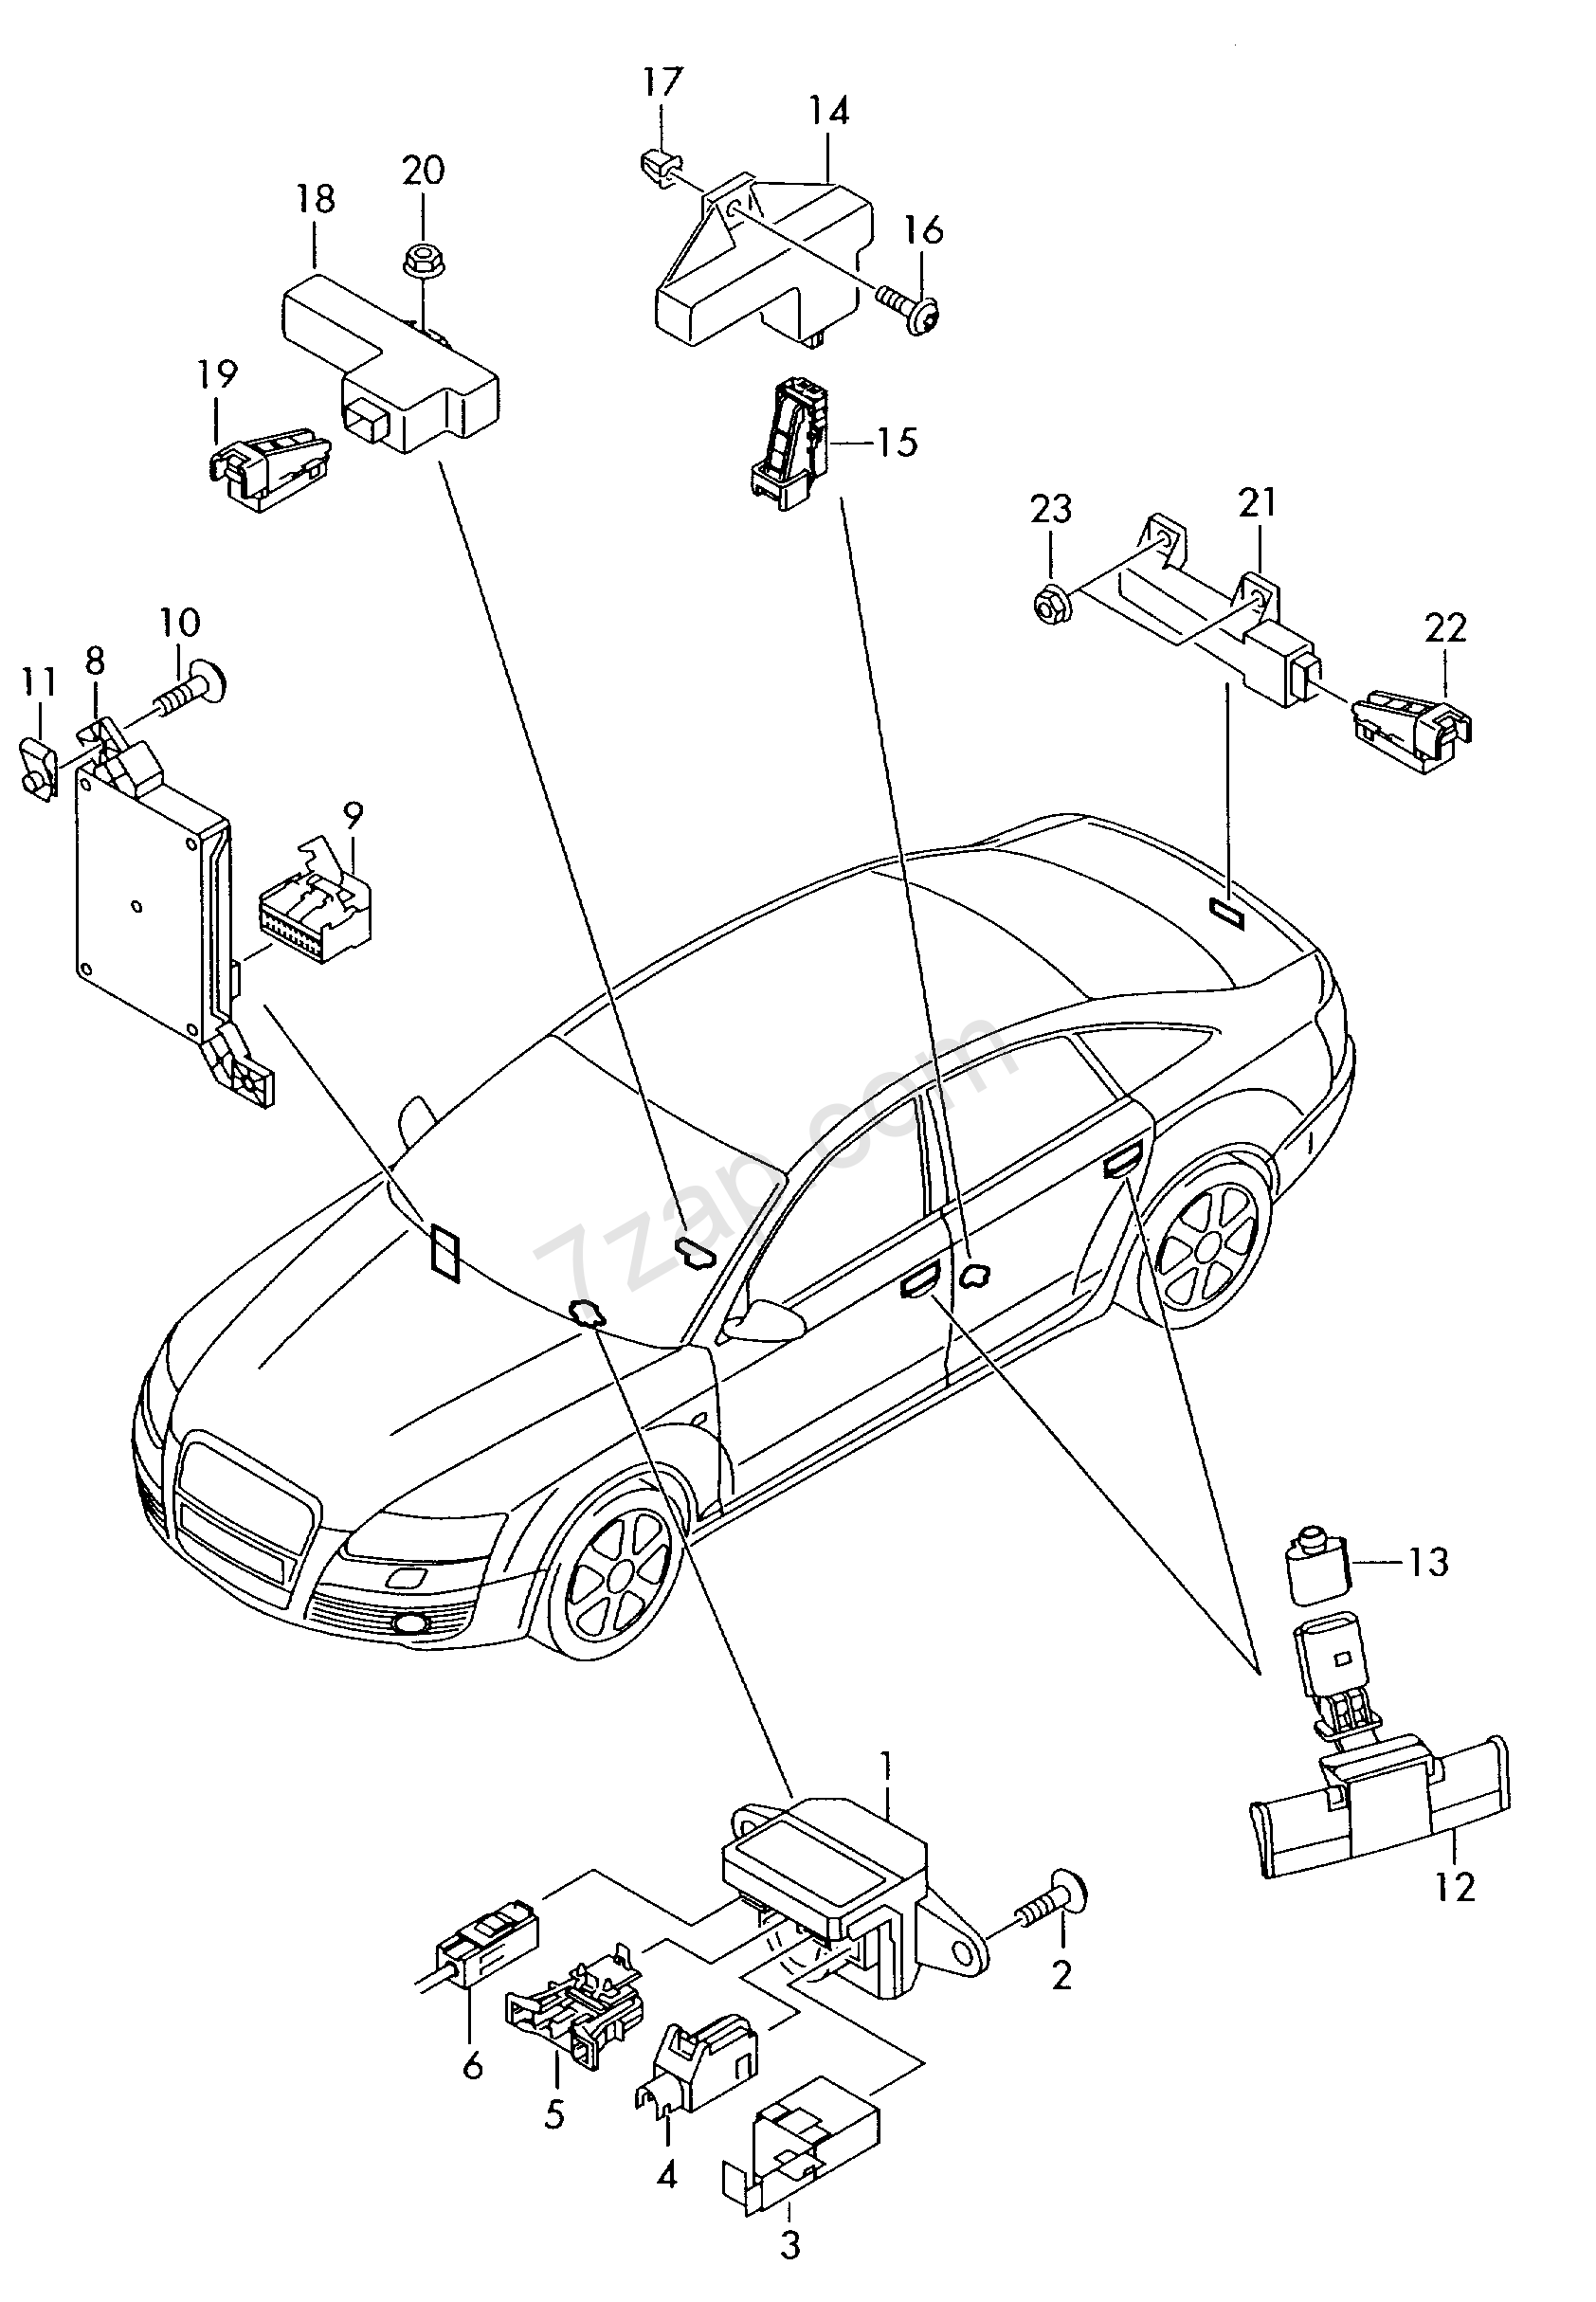 ignition/starter switch; antenna reading unit for Audi